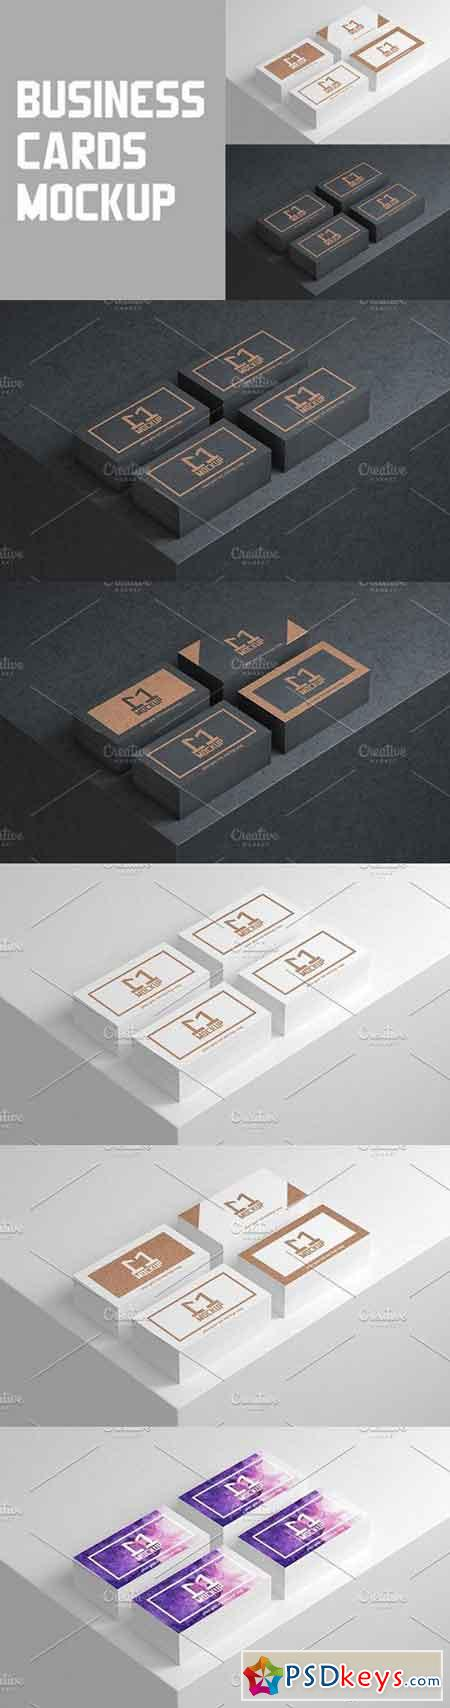 Stacks of Business Cards Mockup 1049372